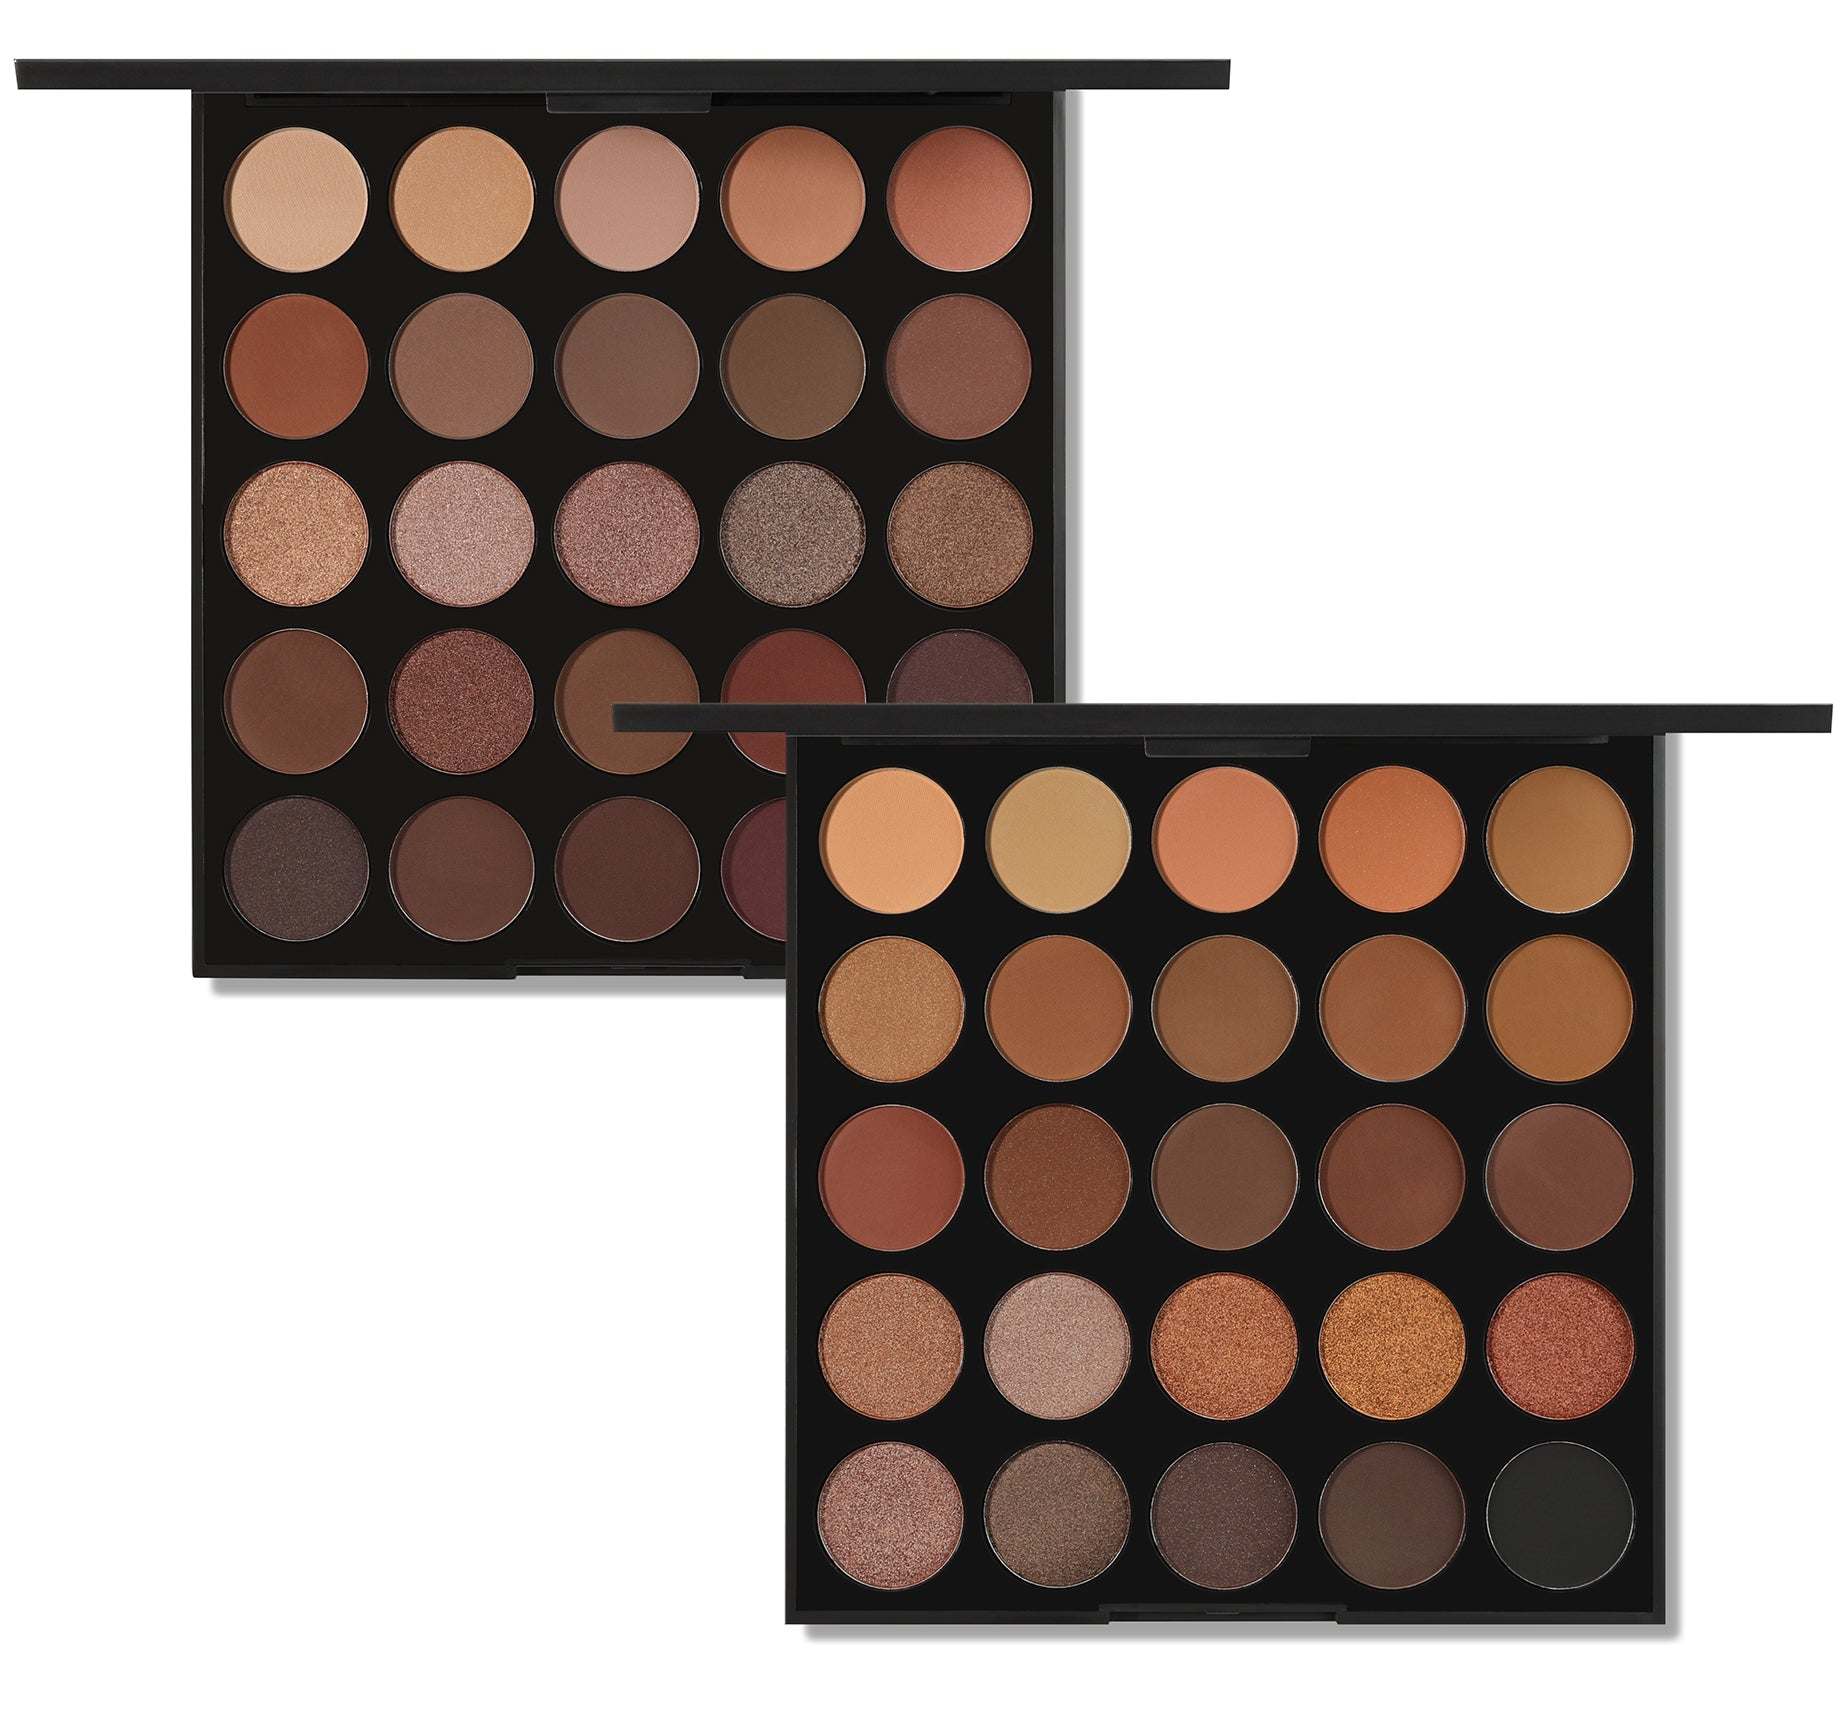 BRONZED MOCHA & COPPER SPICE ARTISTRY PALETTE BUNDLE, view larger image